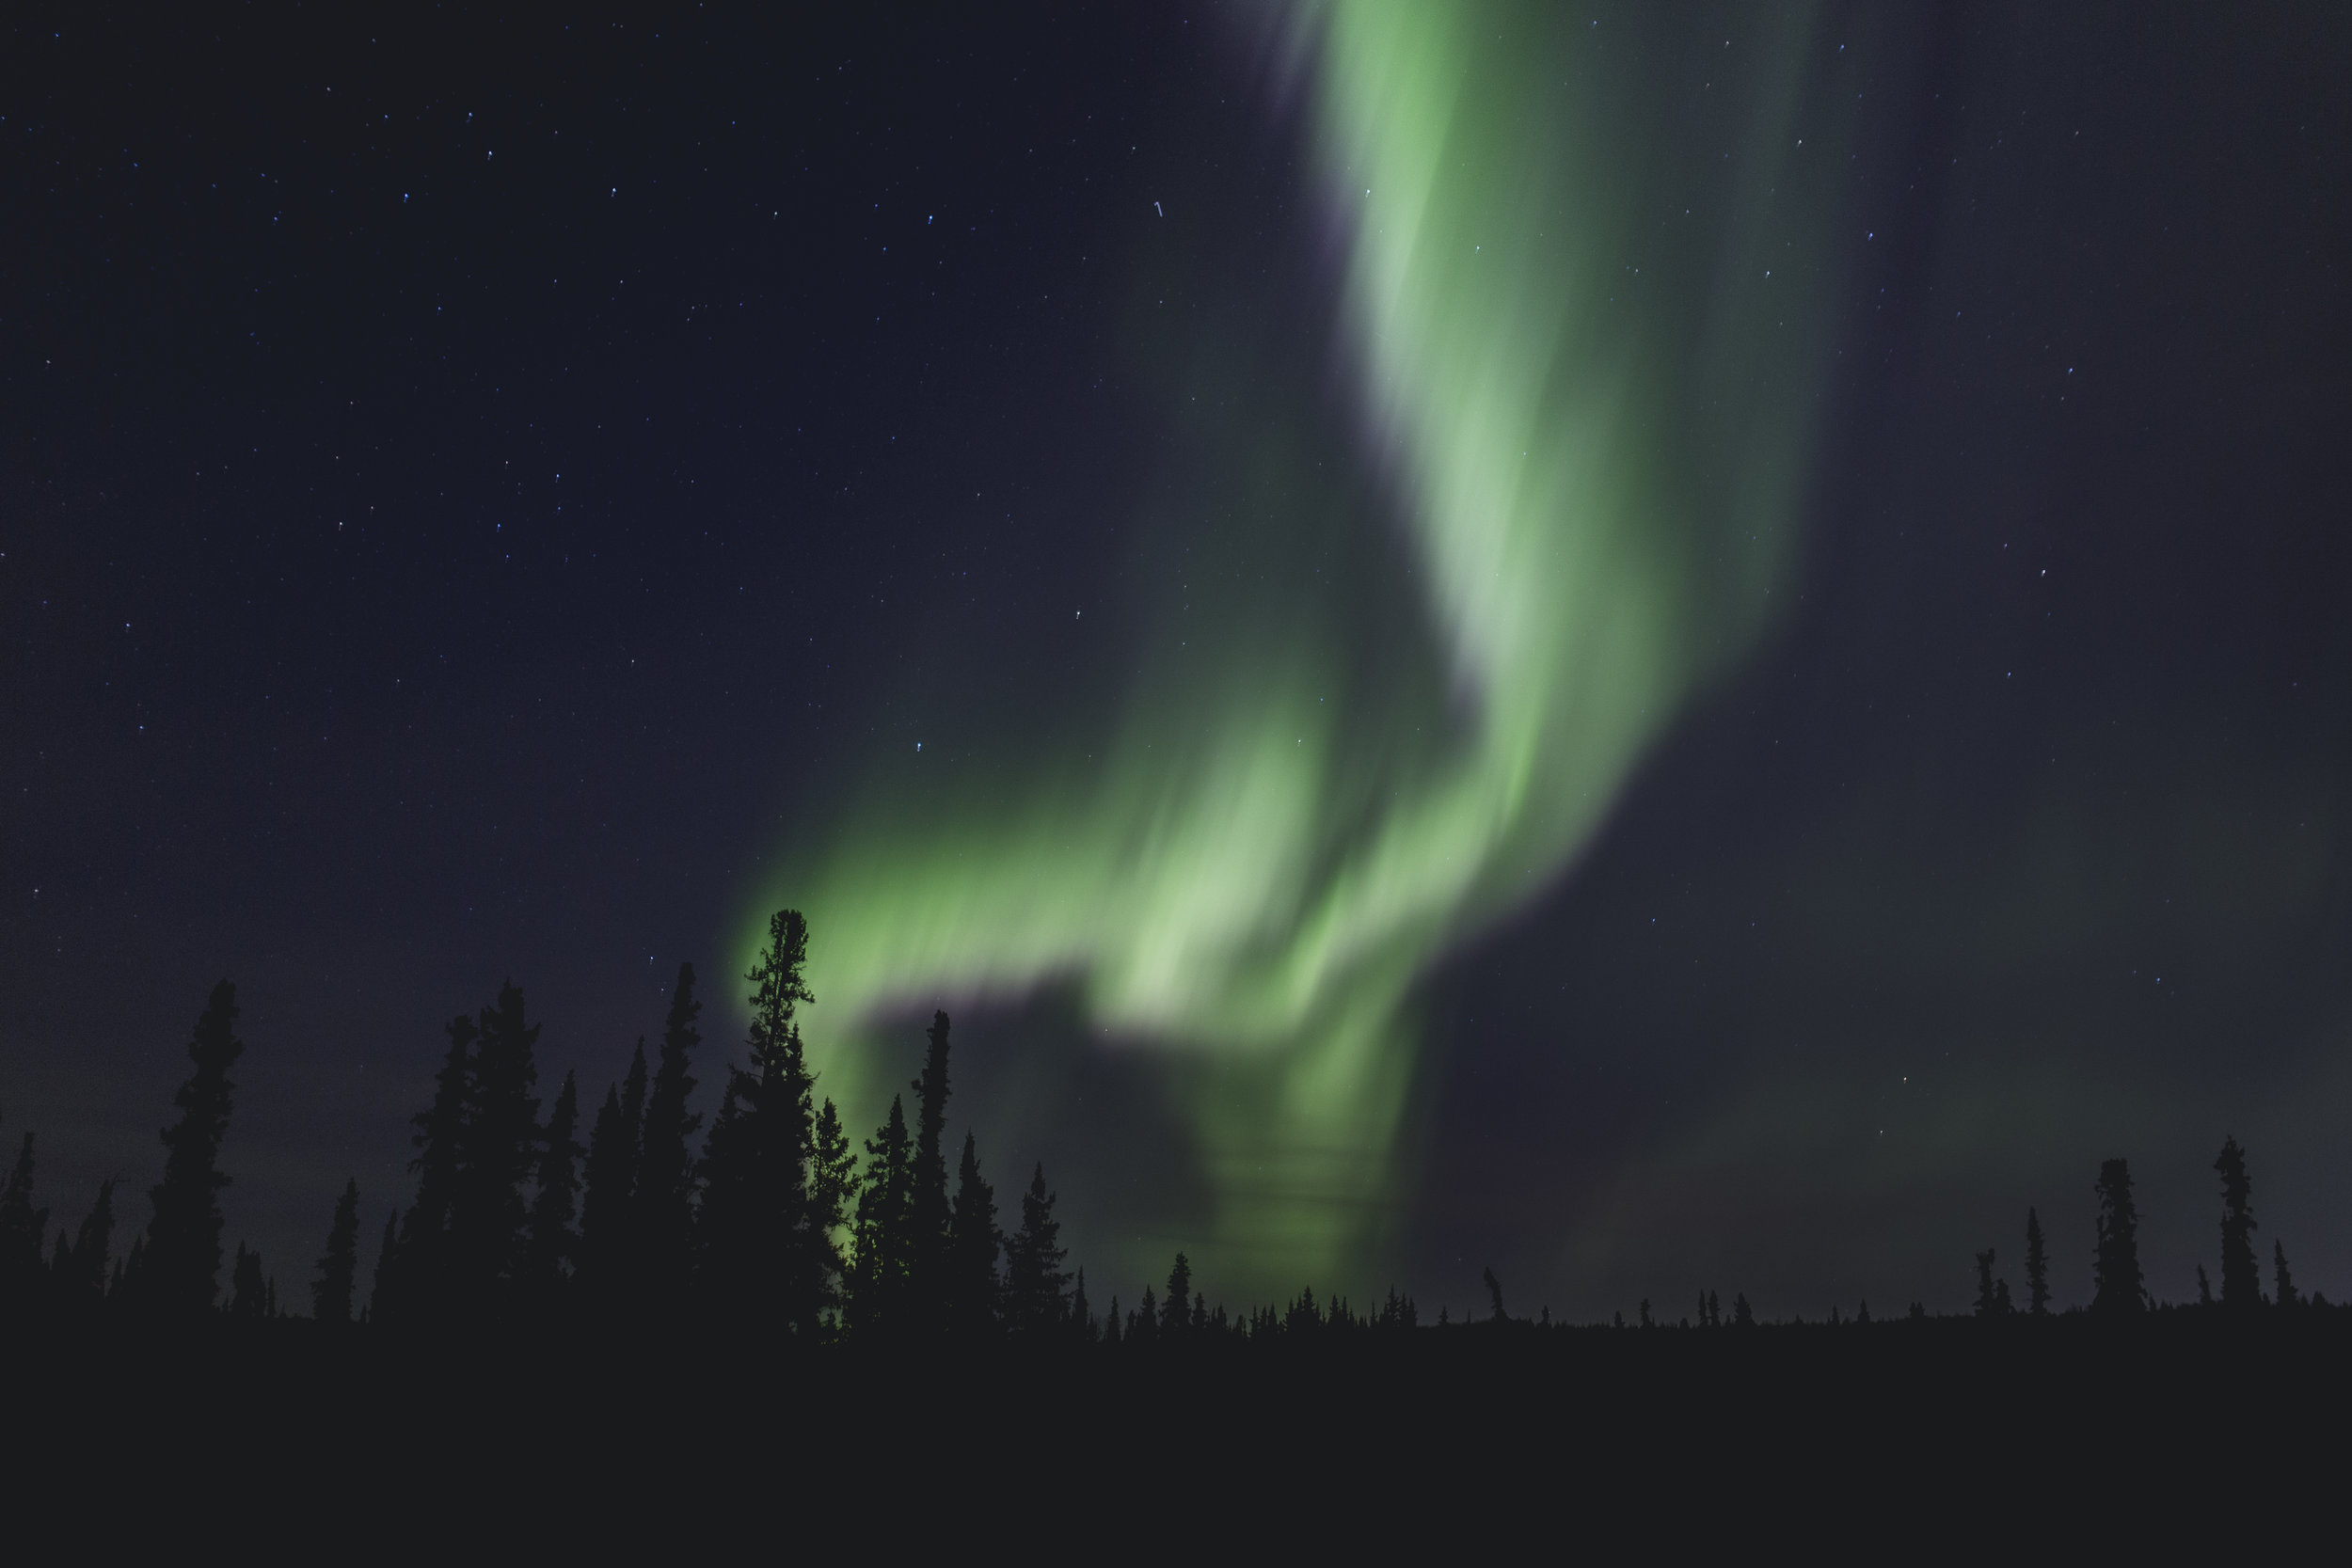 Here is a shot from Fairbanks, Alaska. The tree line presented a nice silhouette to contrast the bright green of the aurora borealis. This image was shot at a focal length of 35mm, f/1.4, 2.0 seconds, and and ISO of 640.